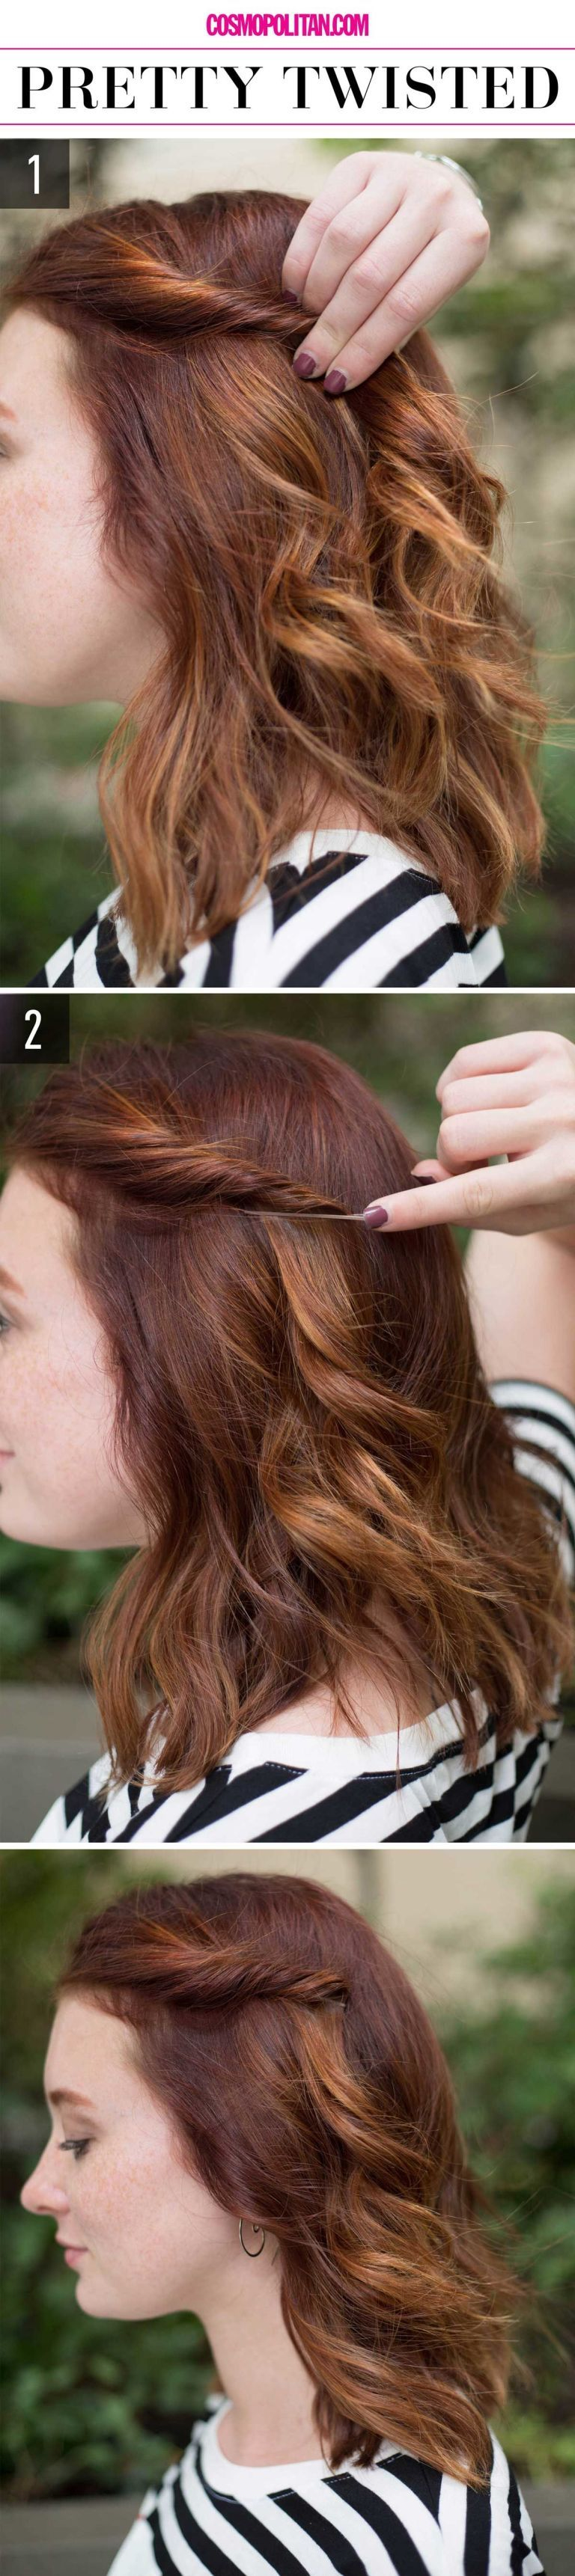 15 Super Easy Hairstyles for Girls in 2016 Three Step Hairstyles